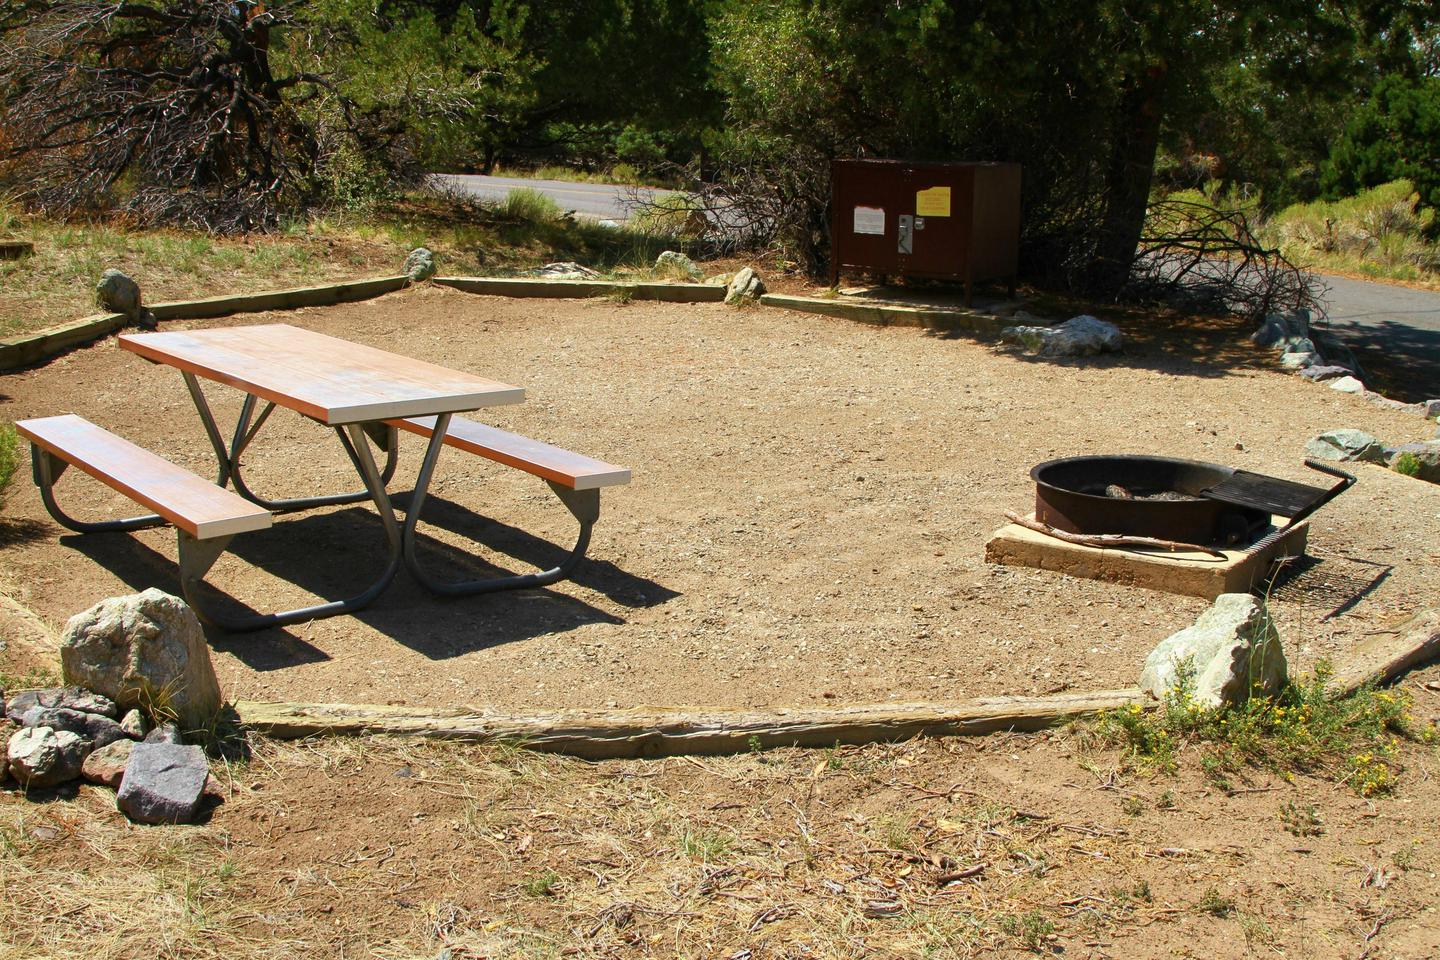 Closeup view of Site #47 designated tent pad, with picnic table, fire ring, and bear box. Road through campground can be seen next to siteSite #47, Pinon Flats Campground